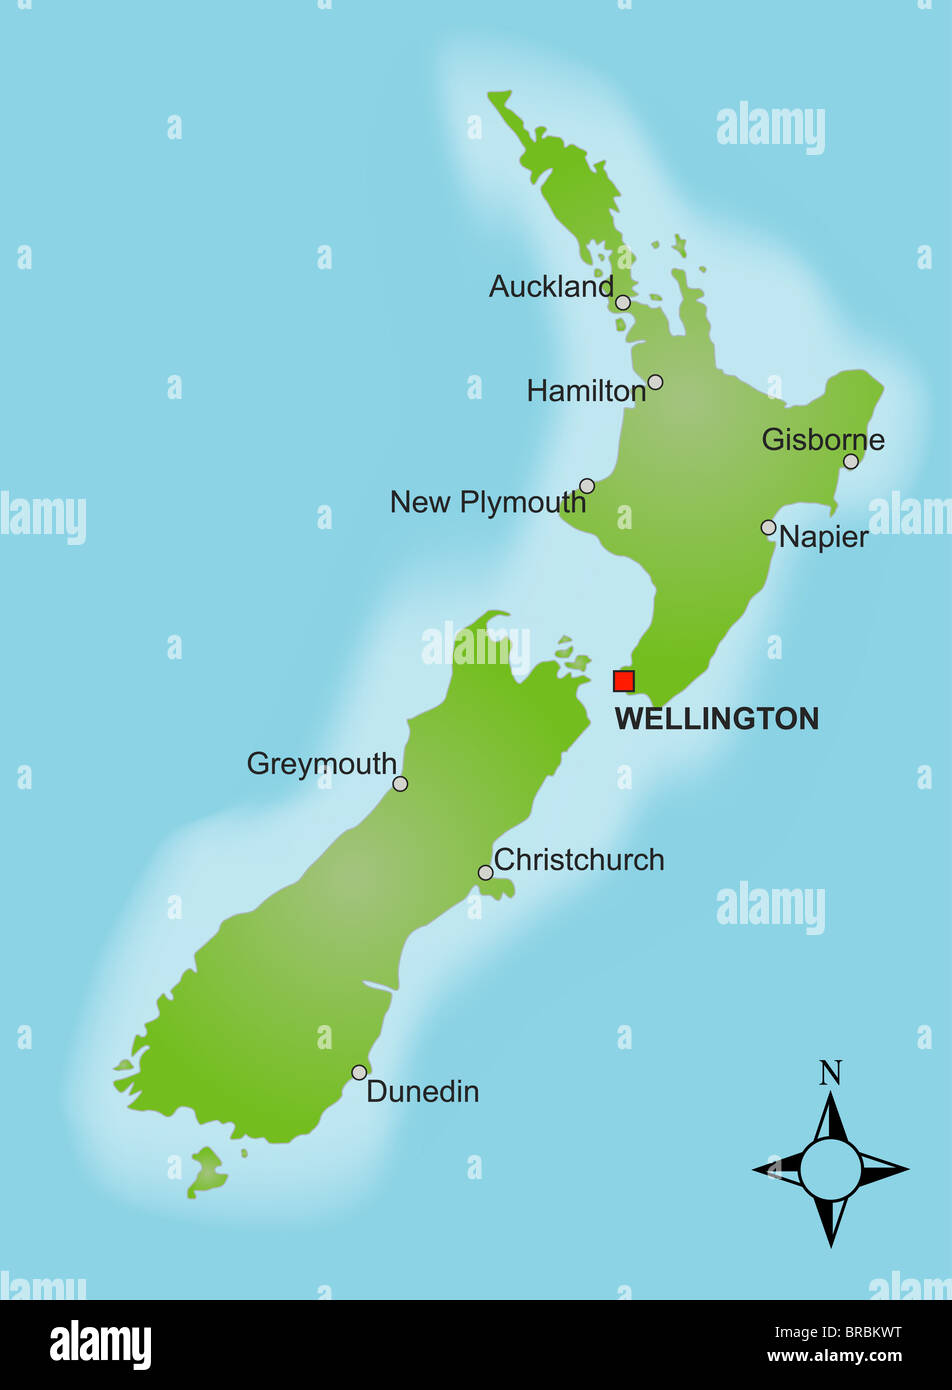 Cities In New Zealand Map.A Stylized Map Of New Zealand Showing Different Cities Stock Photo